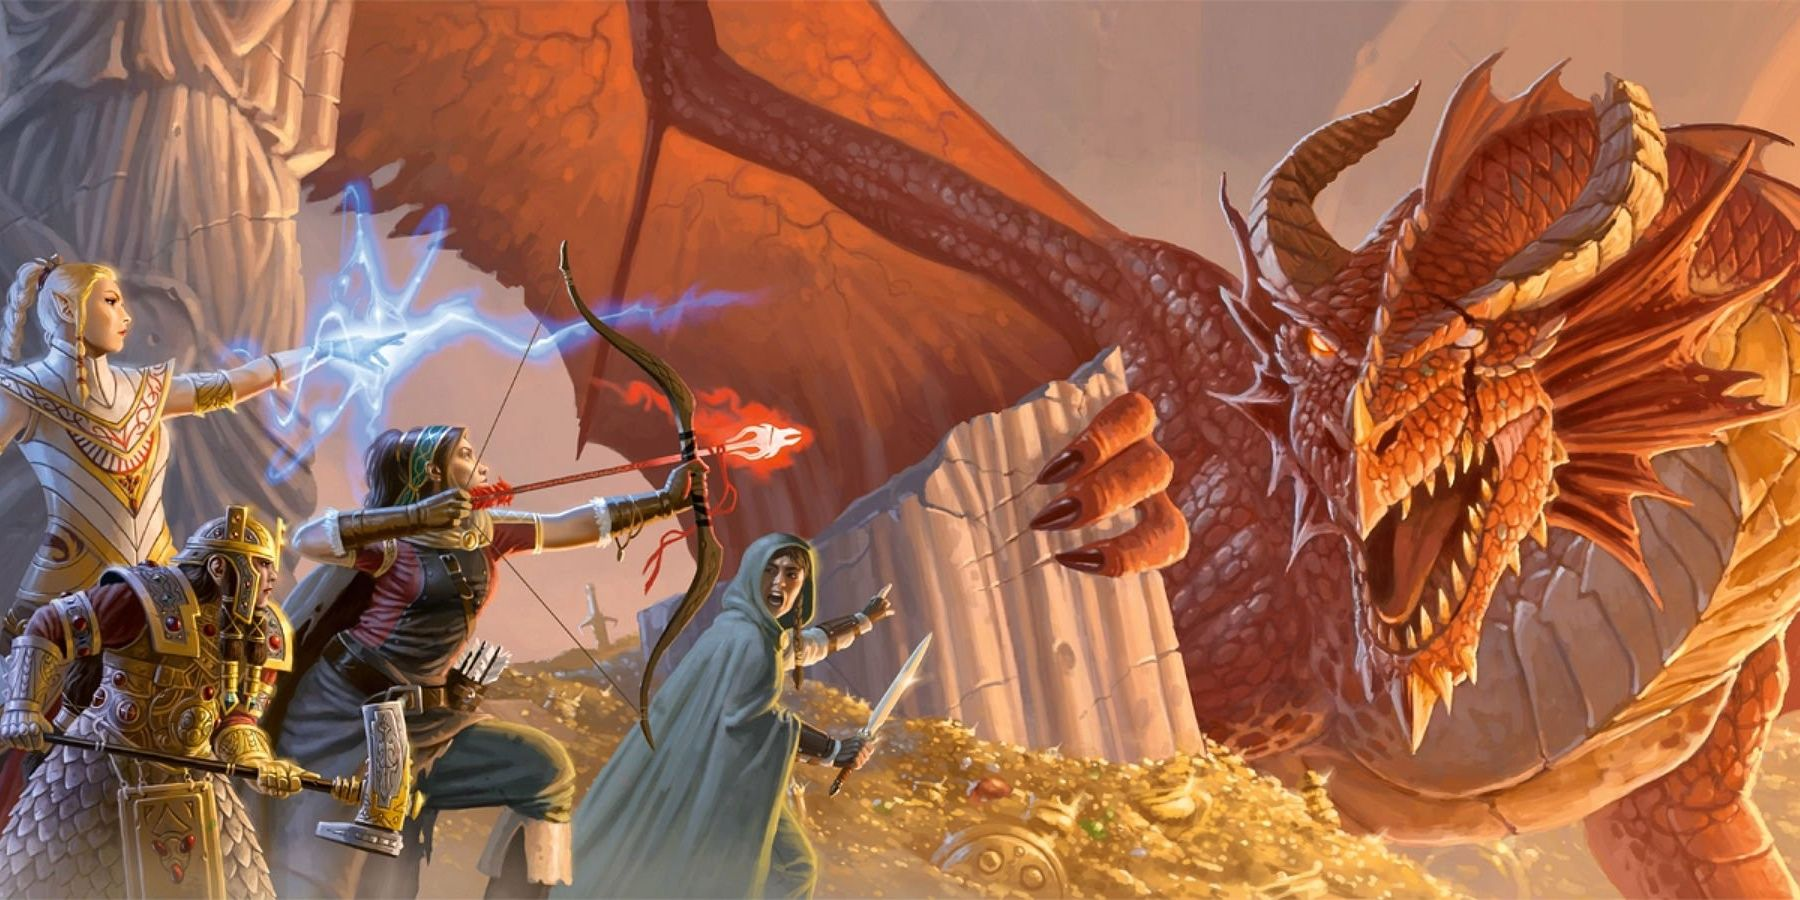 Dungeons & Dragons: How to Scale Enemies & Monsters